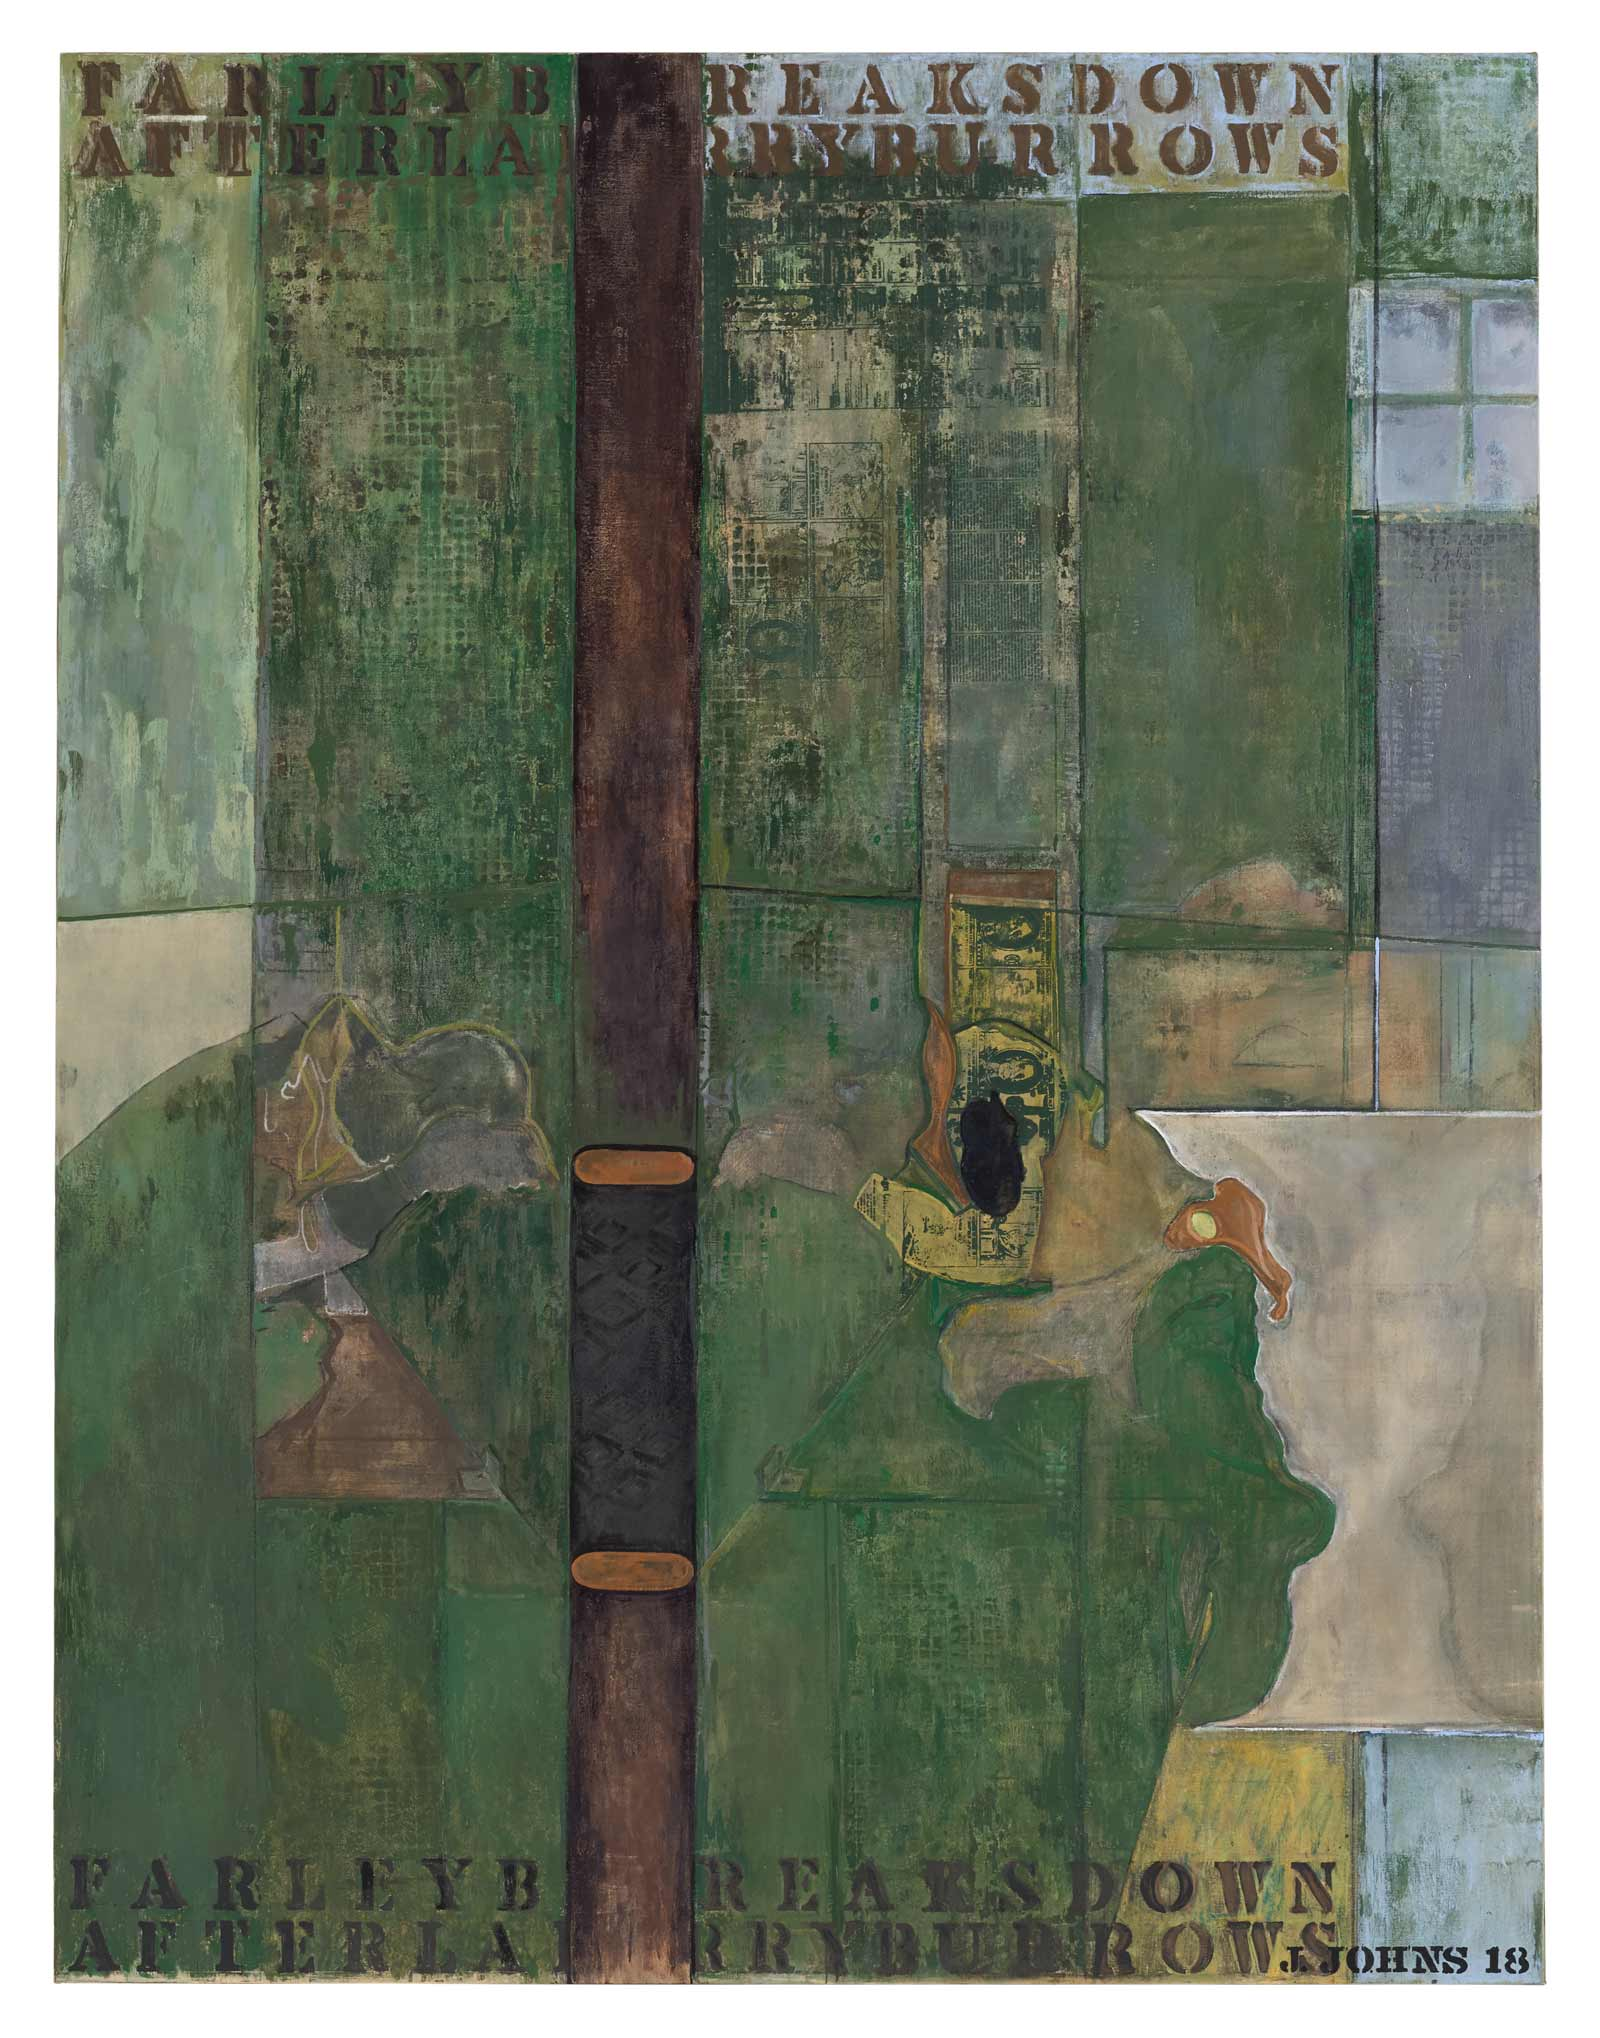 Jasper Johns's Visions in Green | by Deborah Solomon | NYR Daily | The New York Review of Books